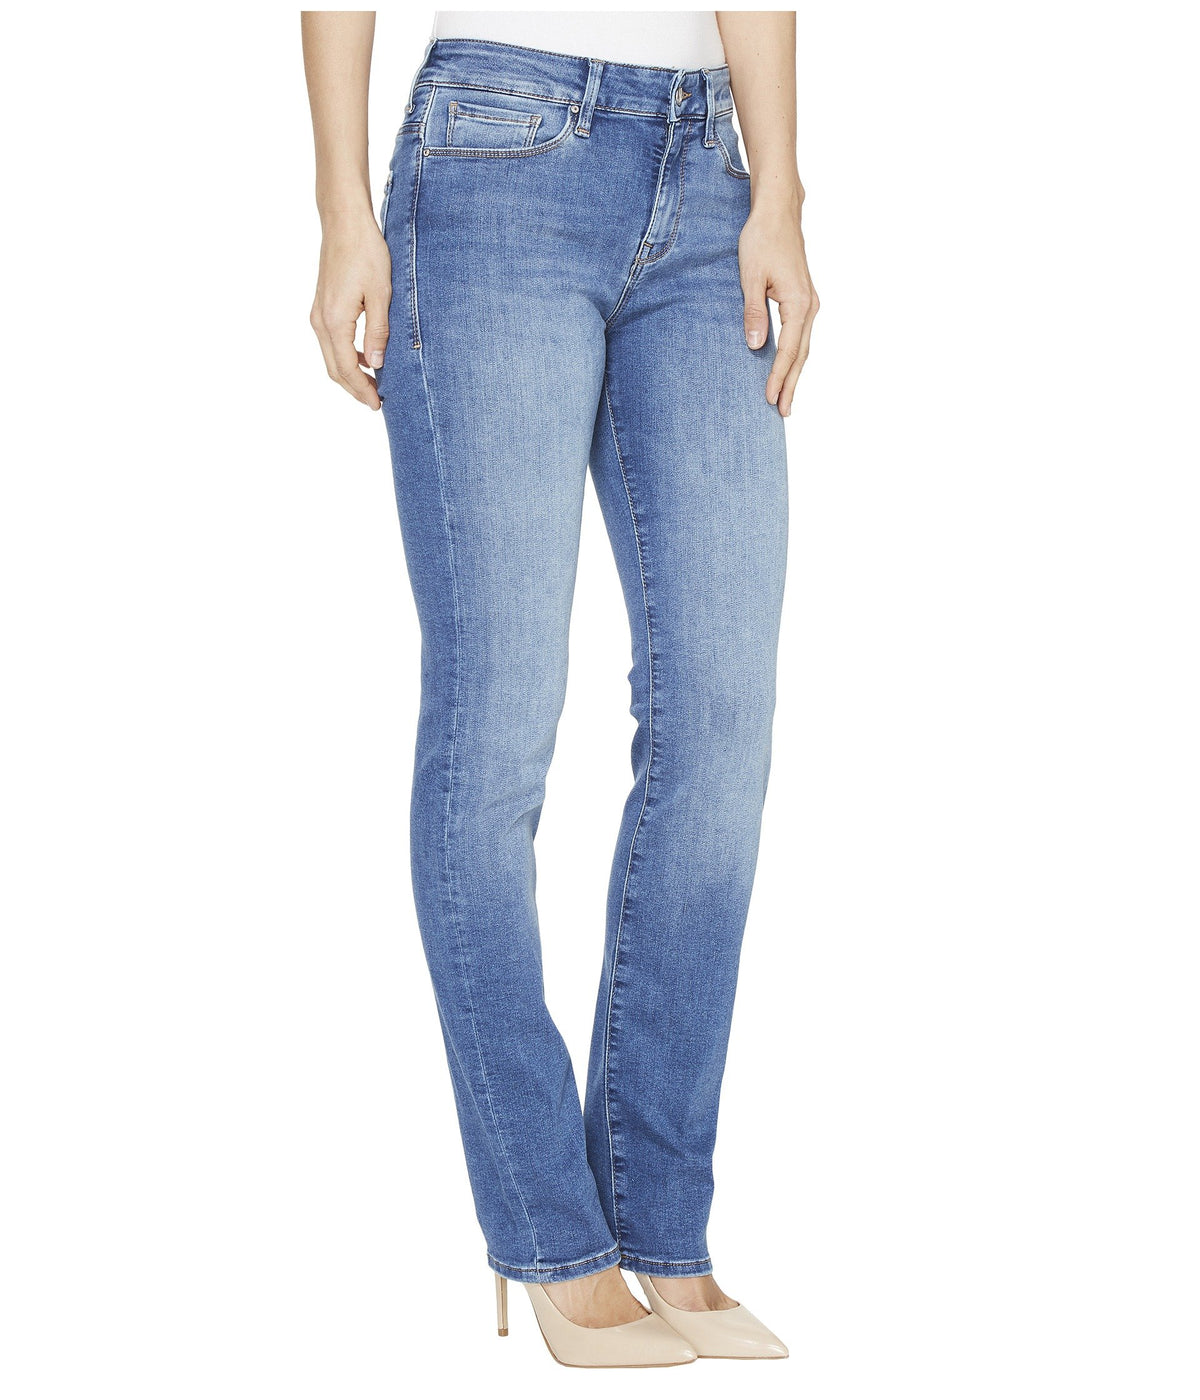 Kendra High Rise Straight Leg Jeans in Mid Soft Shanti